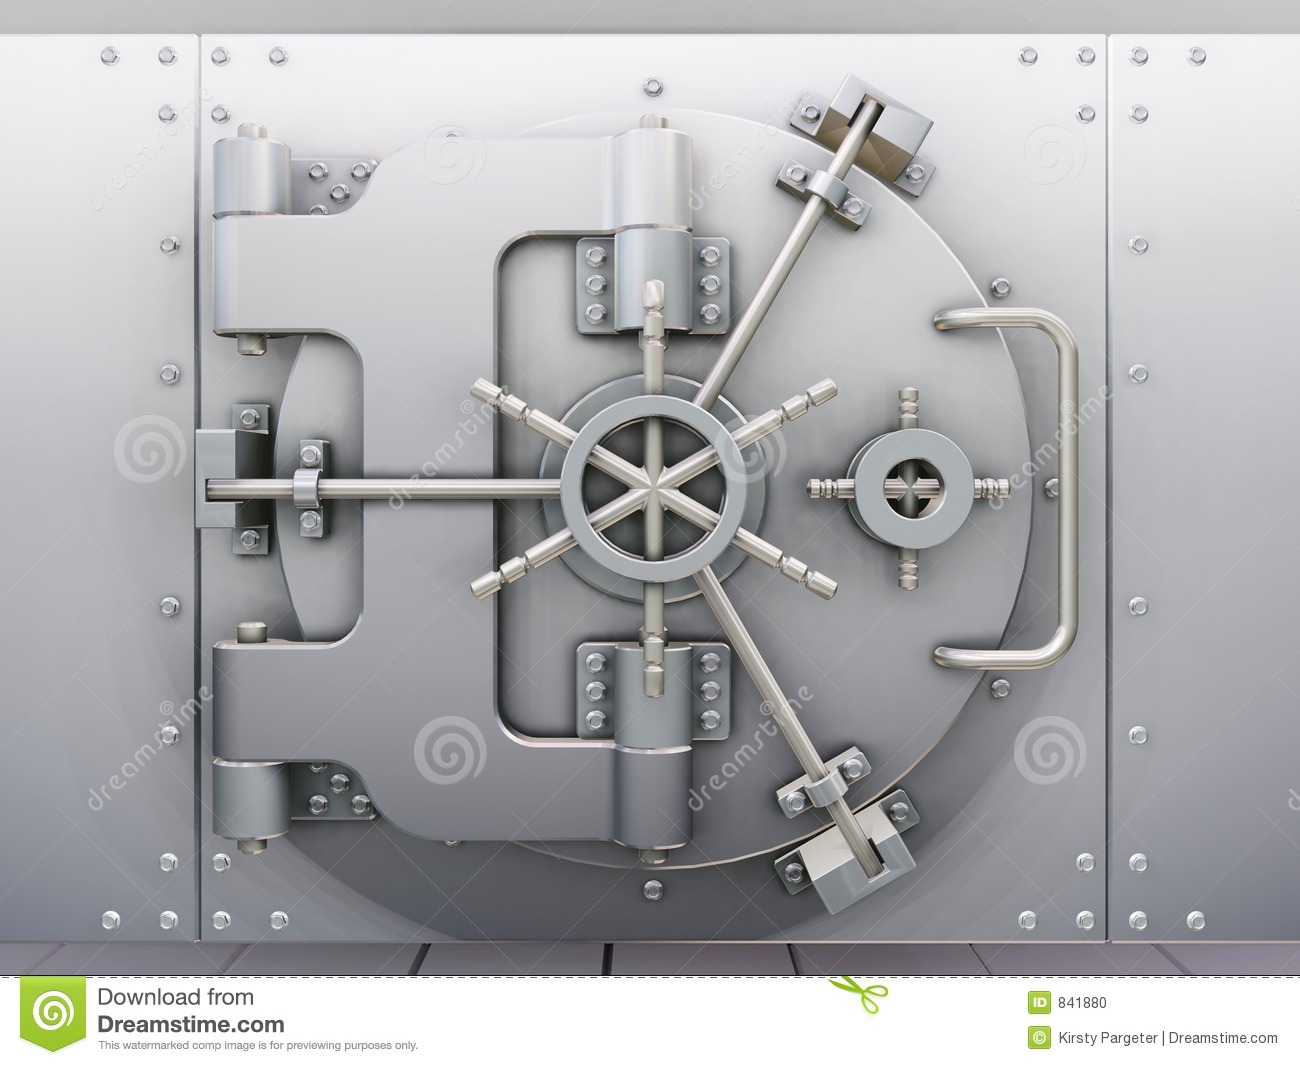 Bank vault door clipart svg library library Bank Vault Stock Photo - Image: 841880 svg library library